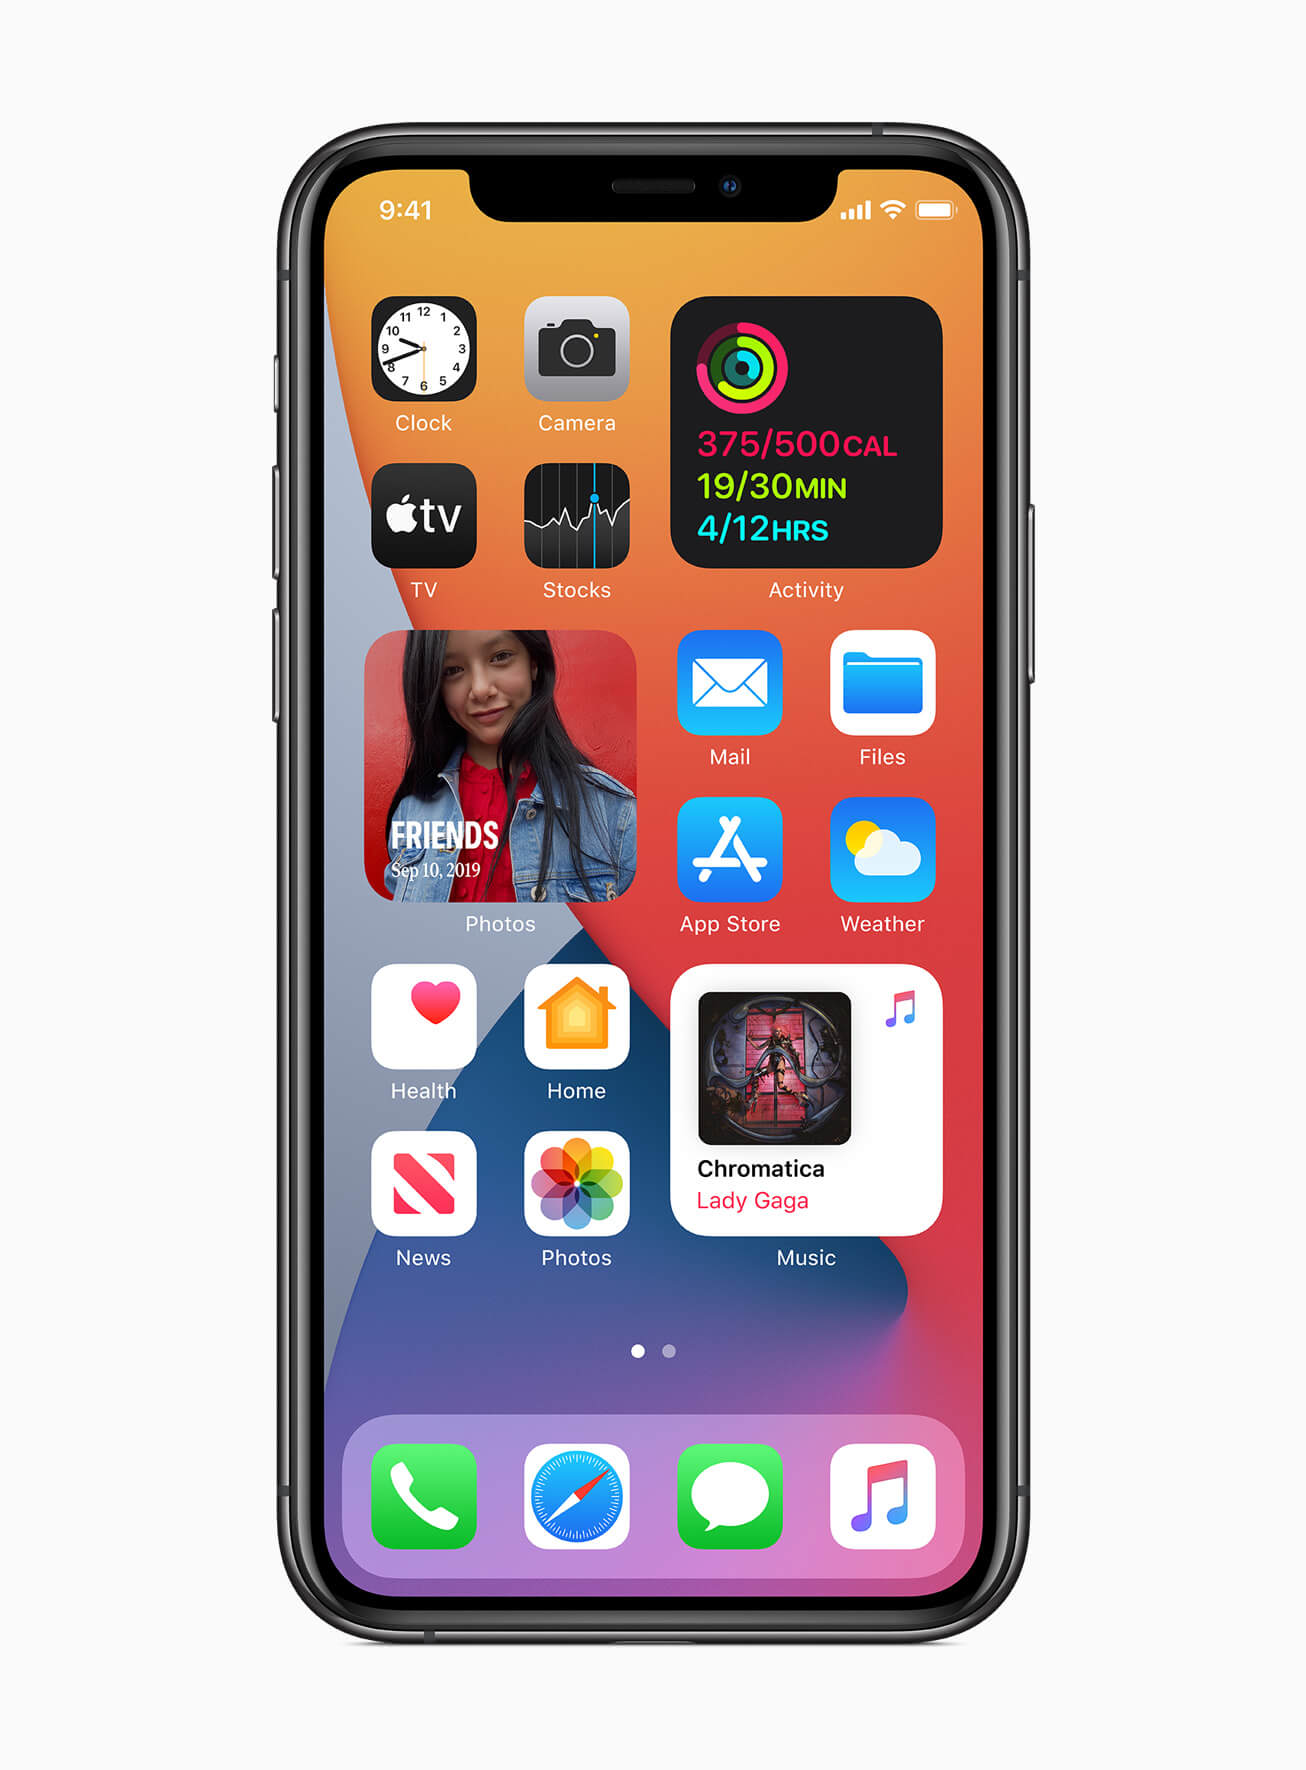 Apple iOS 14 widgets